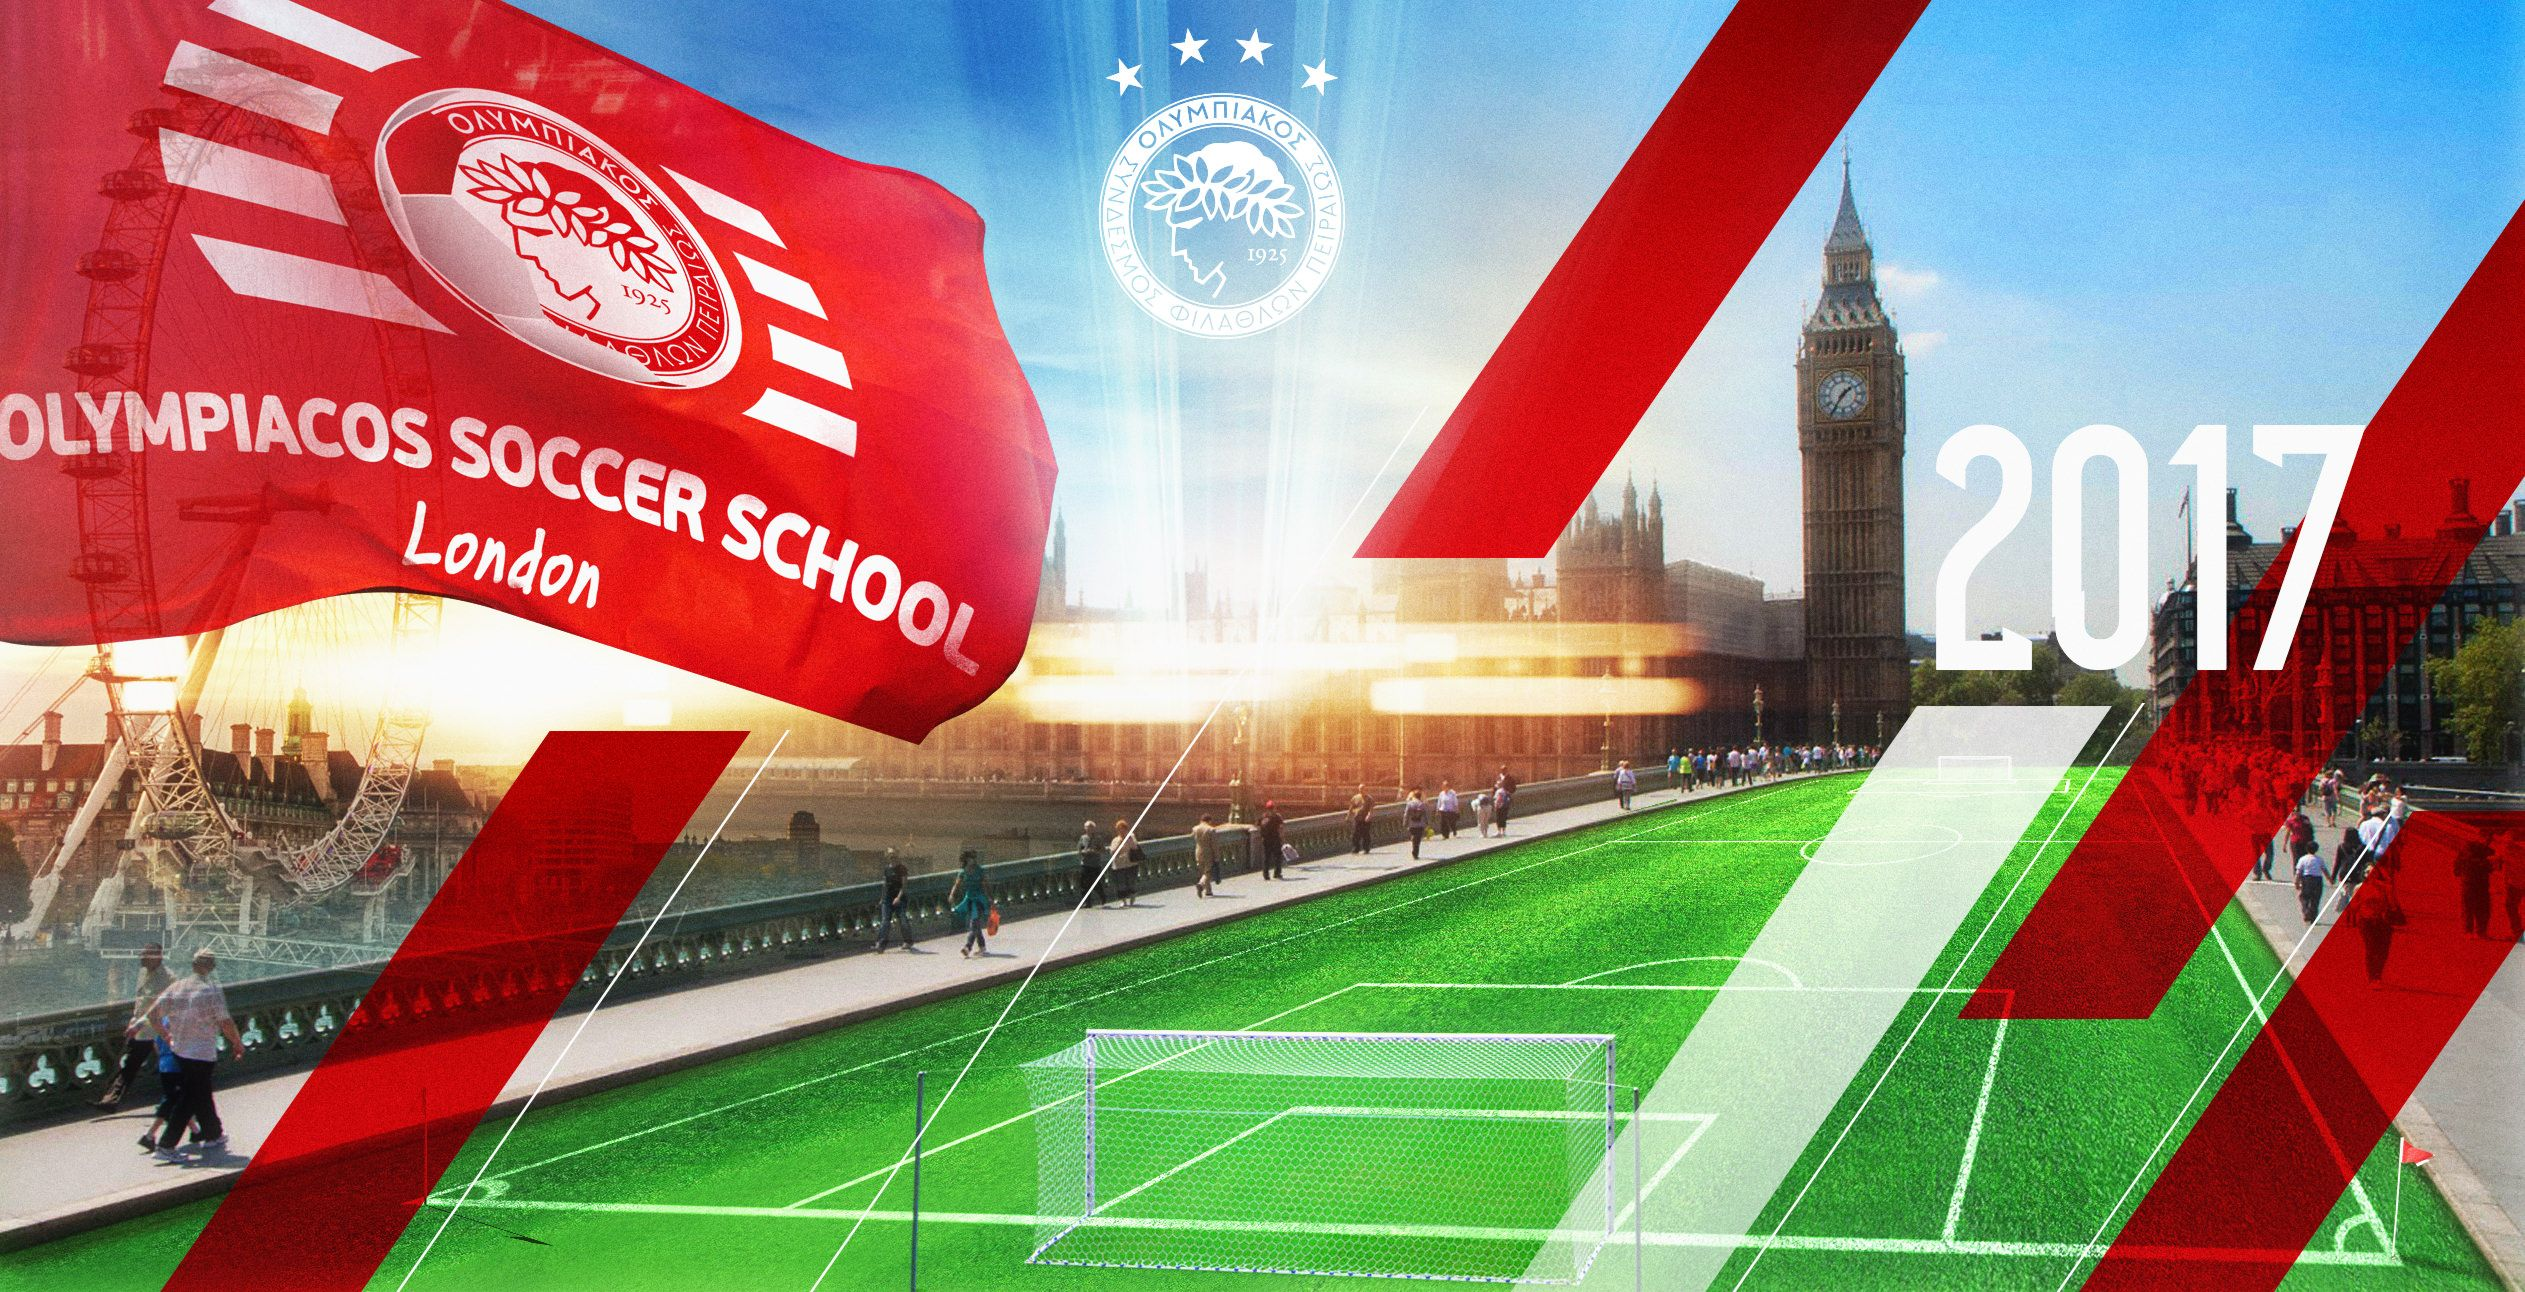 Our Football School in London!